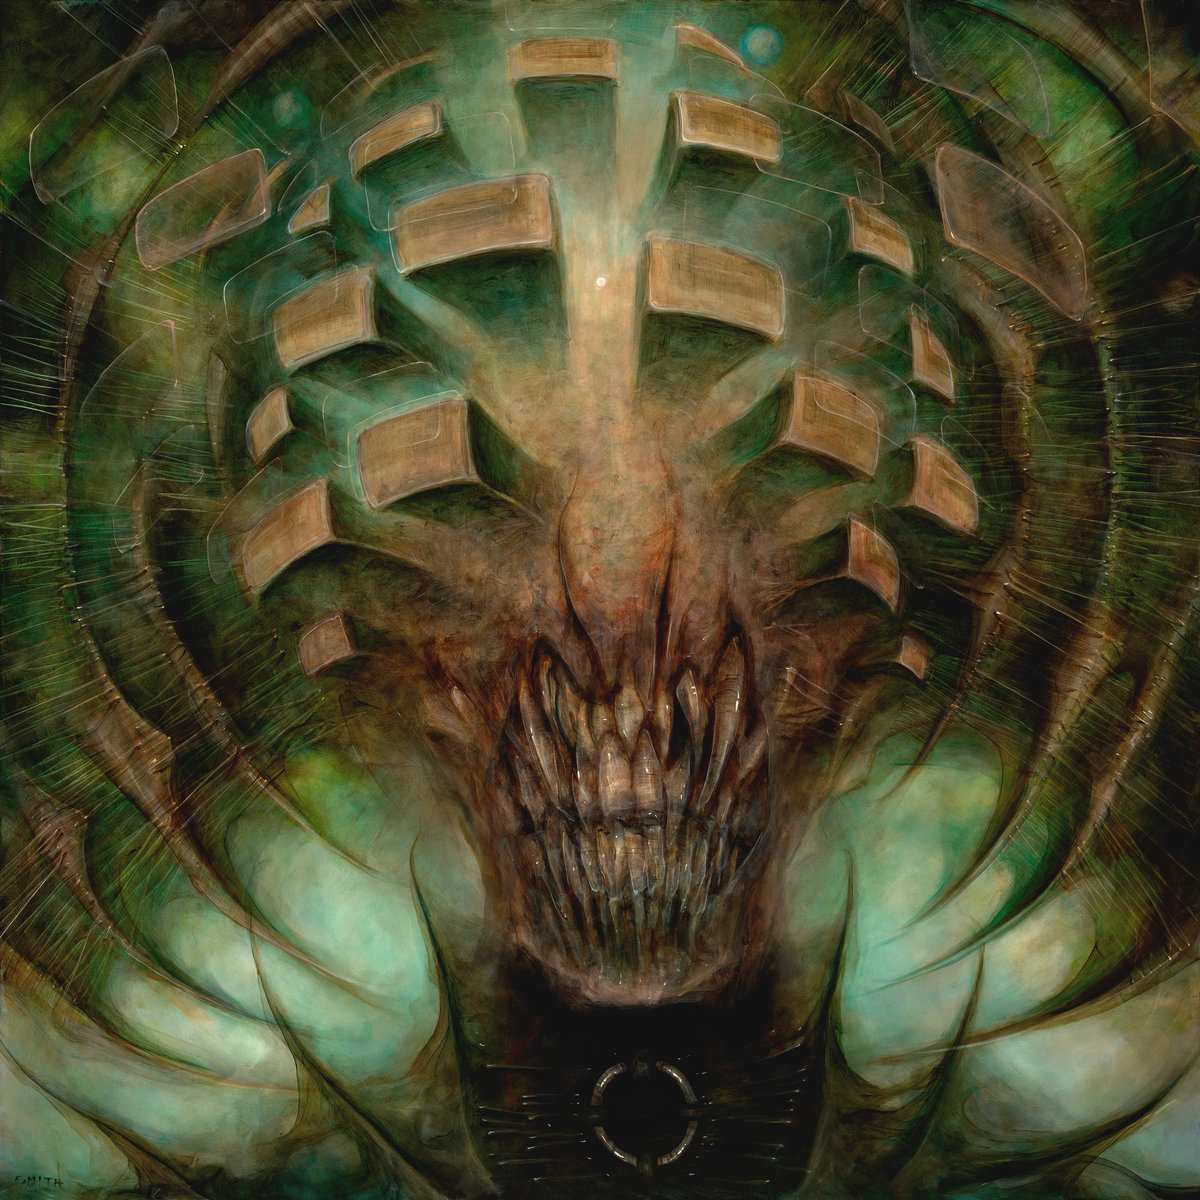 13. Horrendous - Idol - While this is not Anerata (IMO their finest hour), Horrendous plunge forward in their exploration of progressive-tinged, old school death metal with Idol. The nods to Atheist, Death, and Cynic are still present in the sound (e.g. plopping bass) and songwriting (e.g. jazzy, jerky structures) but Idol is fresh, original, and quite simply a highly entertaining slab of metal.